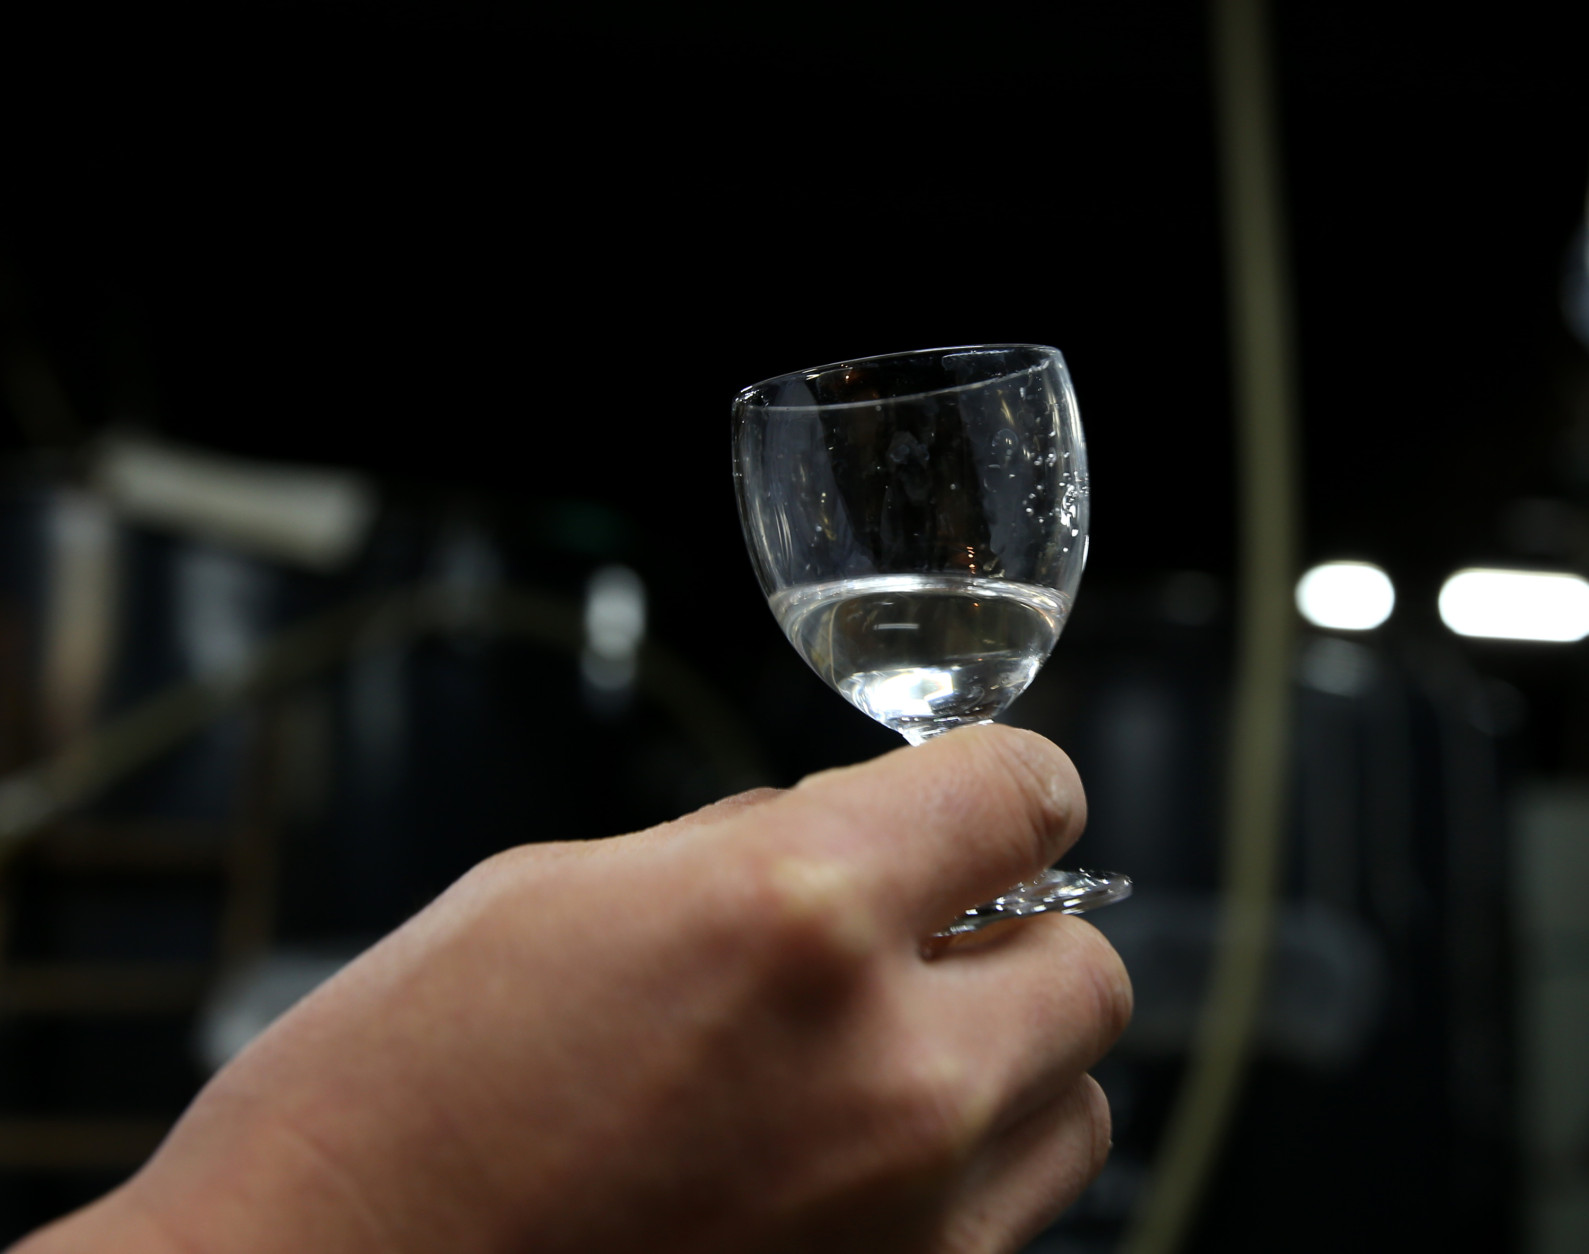 HIMEJI, JAPAN - JANUARY 22:  Japanese sake brewery worker holds up a glass of freshly made sake at Tanaka Sake Brewery on January 22, 2014 in Himeji, Japan. Japanese Prime Minister Shinzo Abe targets 60 billion yen by 2020, a fivefold increase in rice-based product exports including sake.  (Photo by Buddhika Weerasinghe/Getty Images)